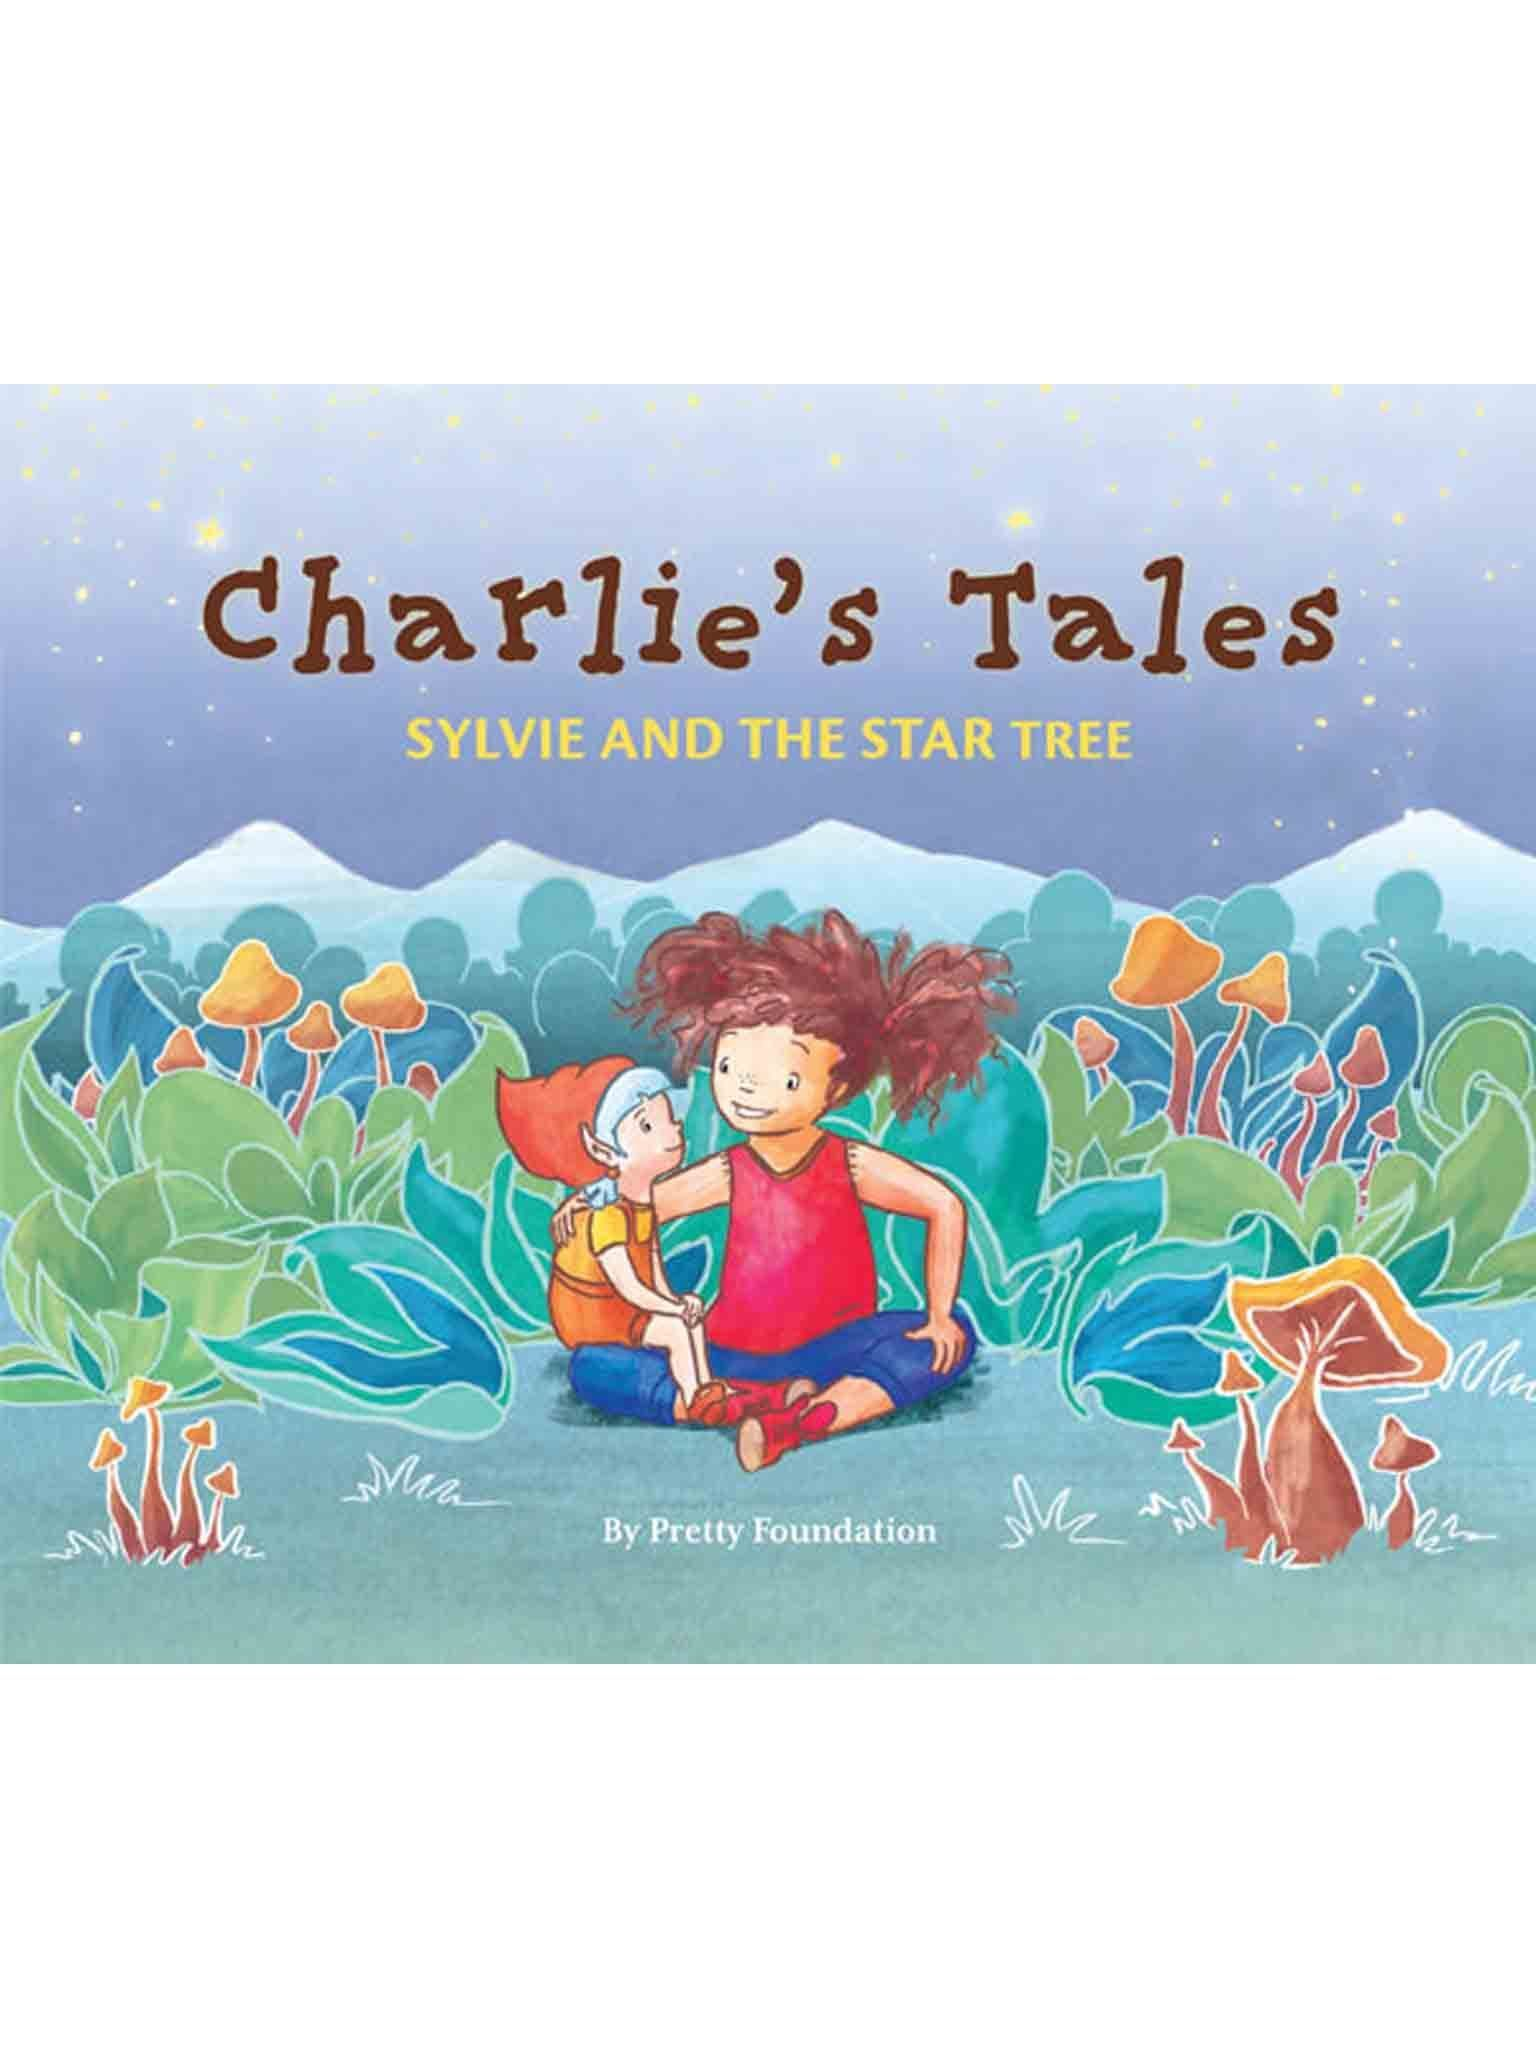 Charlie's Tales Sylvie and the Star Tree